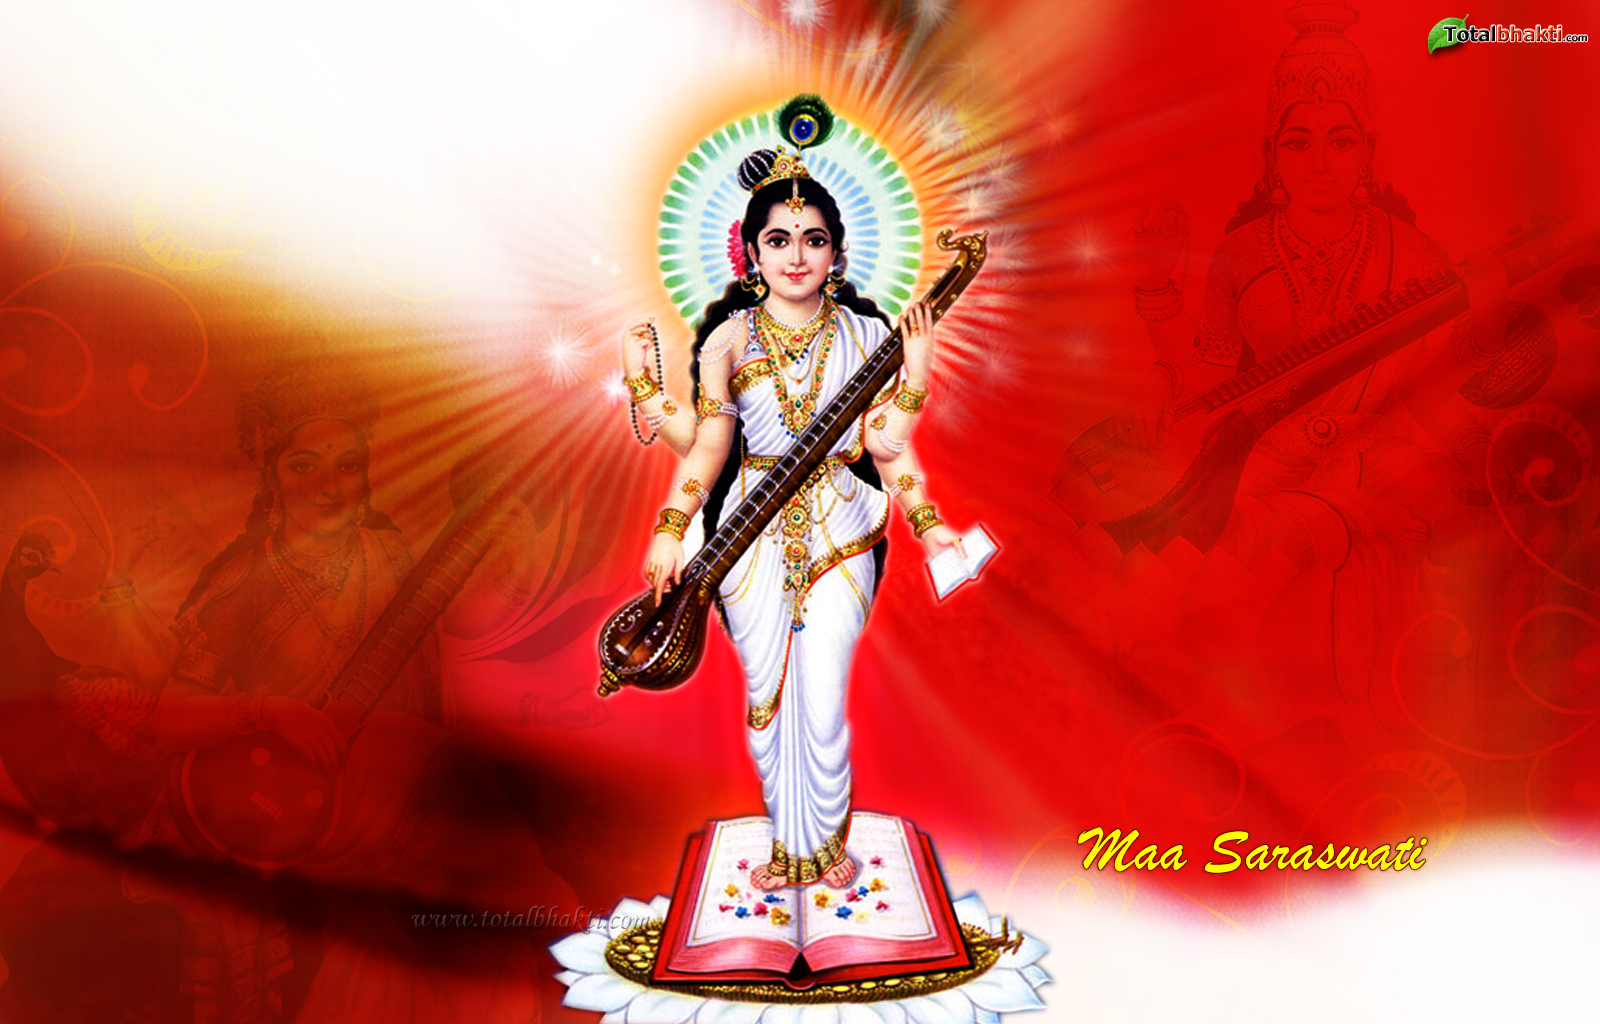 Wallpaper I Love You Maa : Saraswati Maa Wallpaper Desktop Wallpup.com